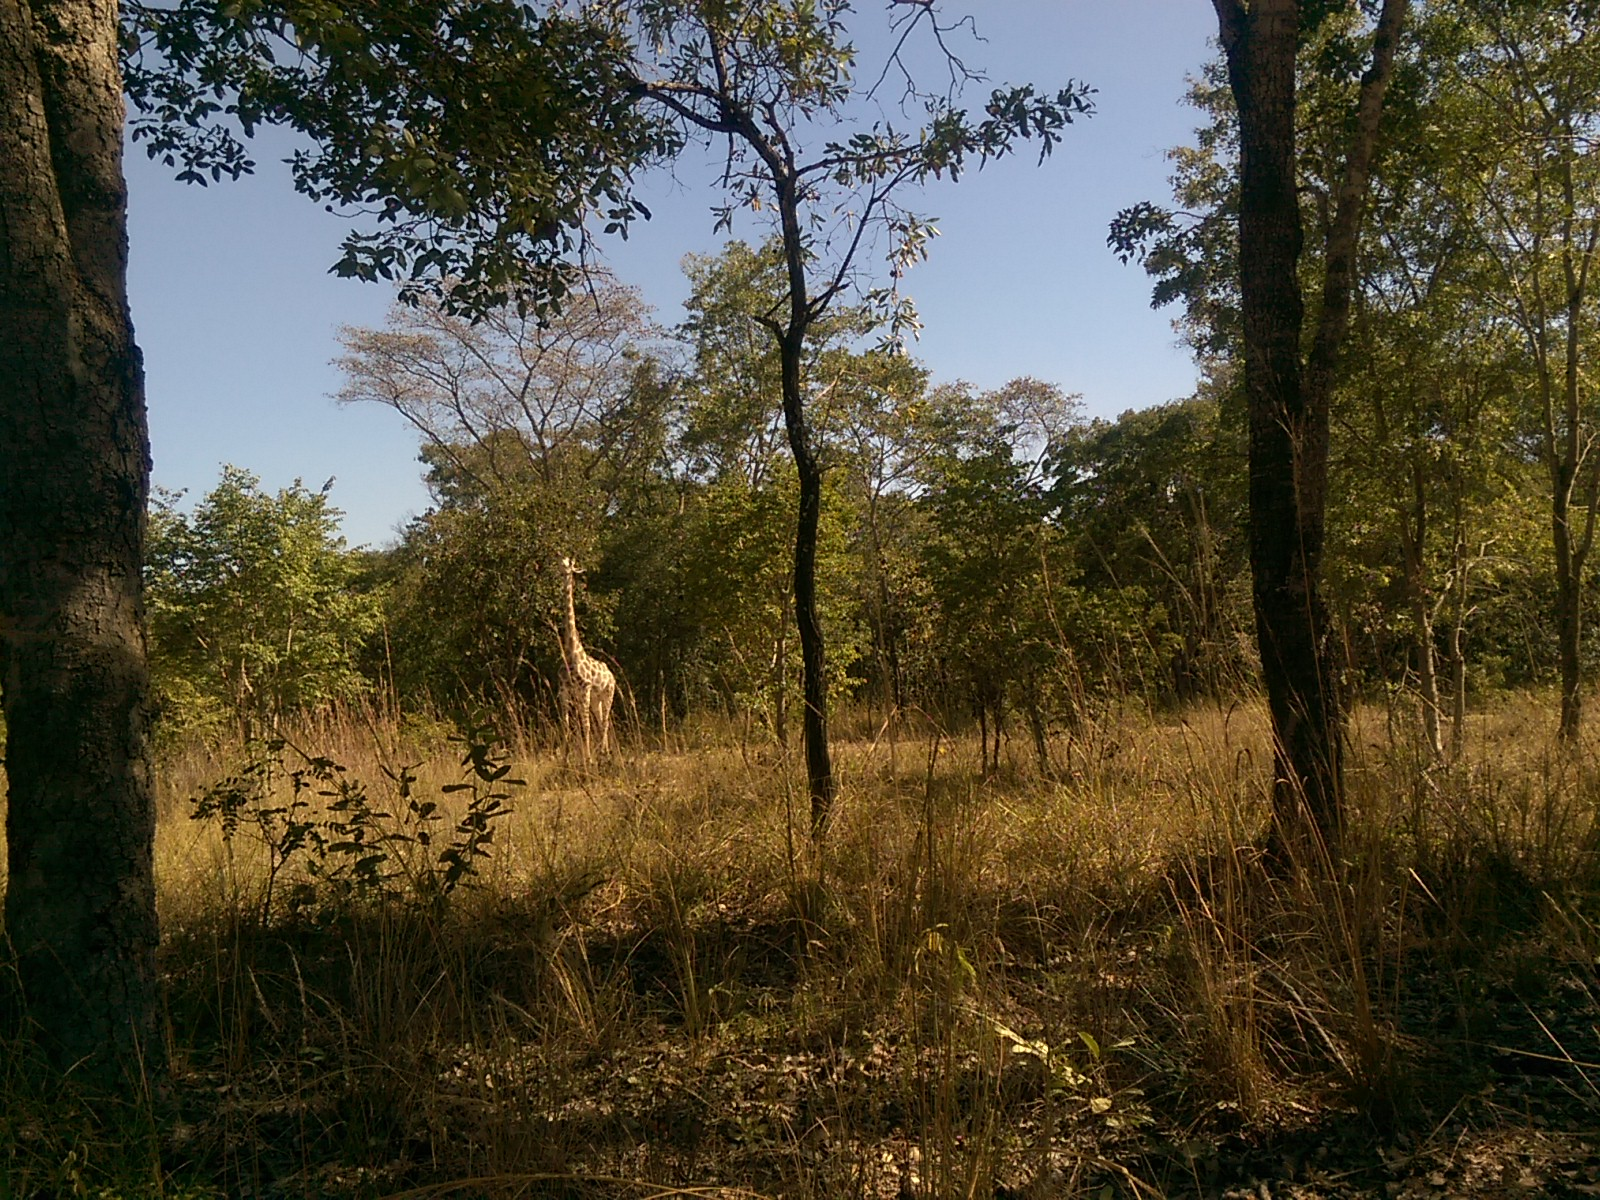 A giraffe eats from a tree in the distance